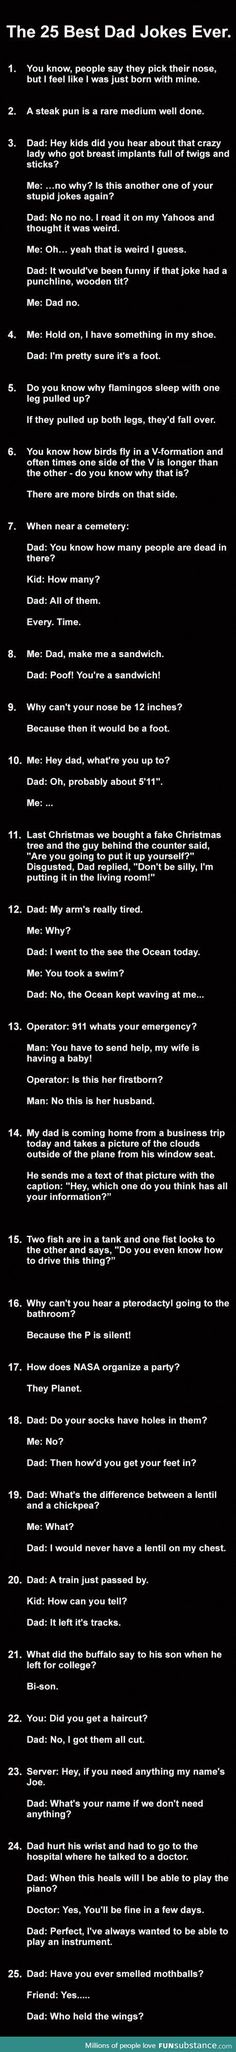 6,7,14,15 and 25 are pretty funny. But then again I'm tired so everything is a little funny.